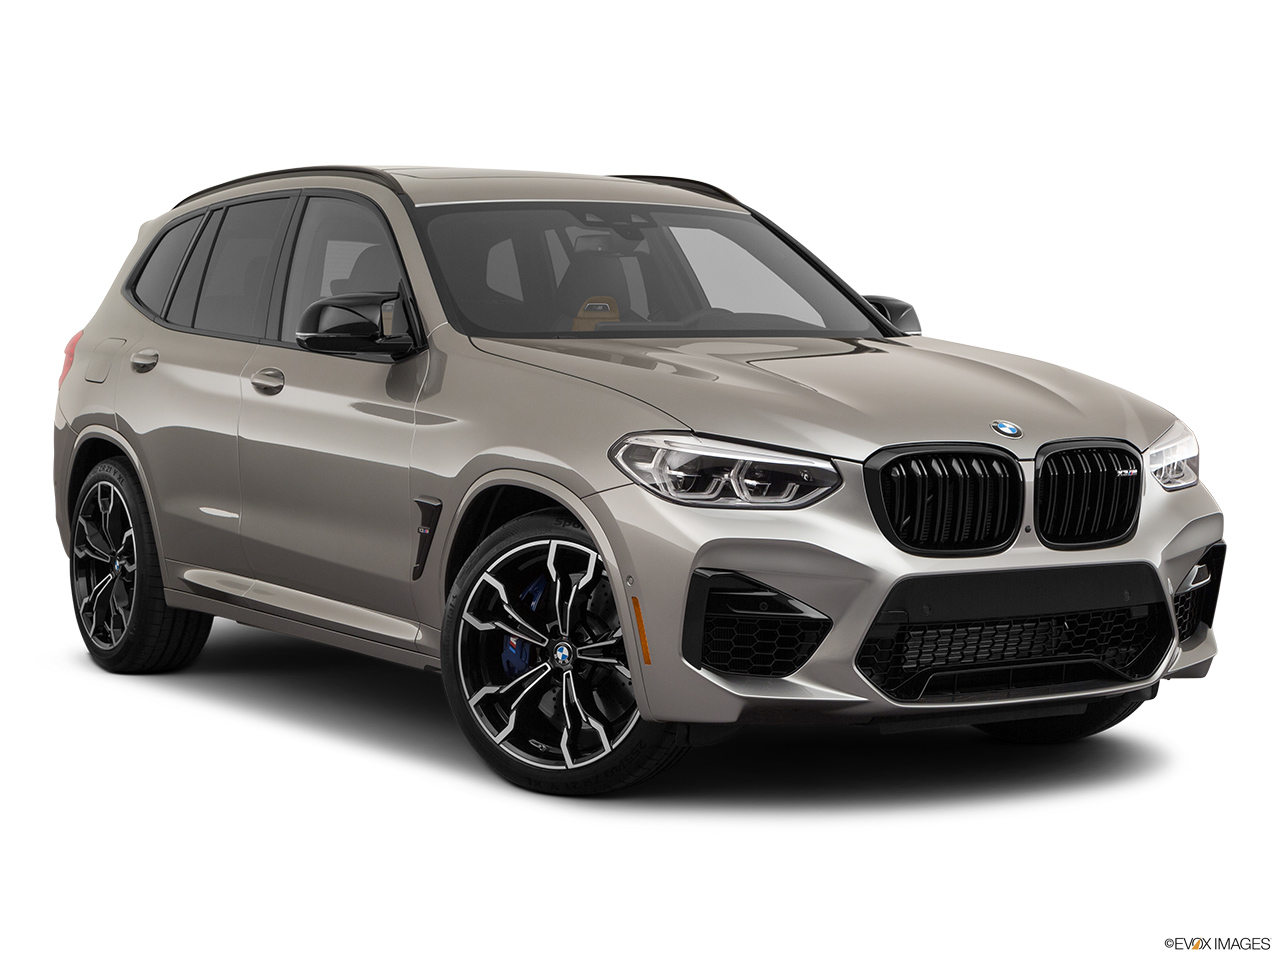 2020 BMW X3 M Competition Front passenger 3/4 w/ wheels turned.